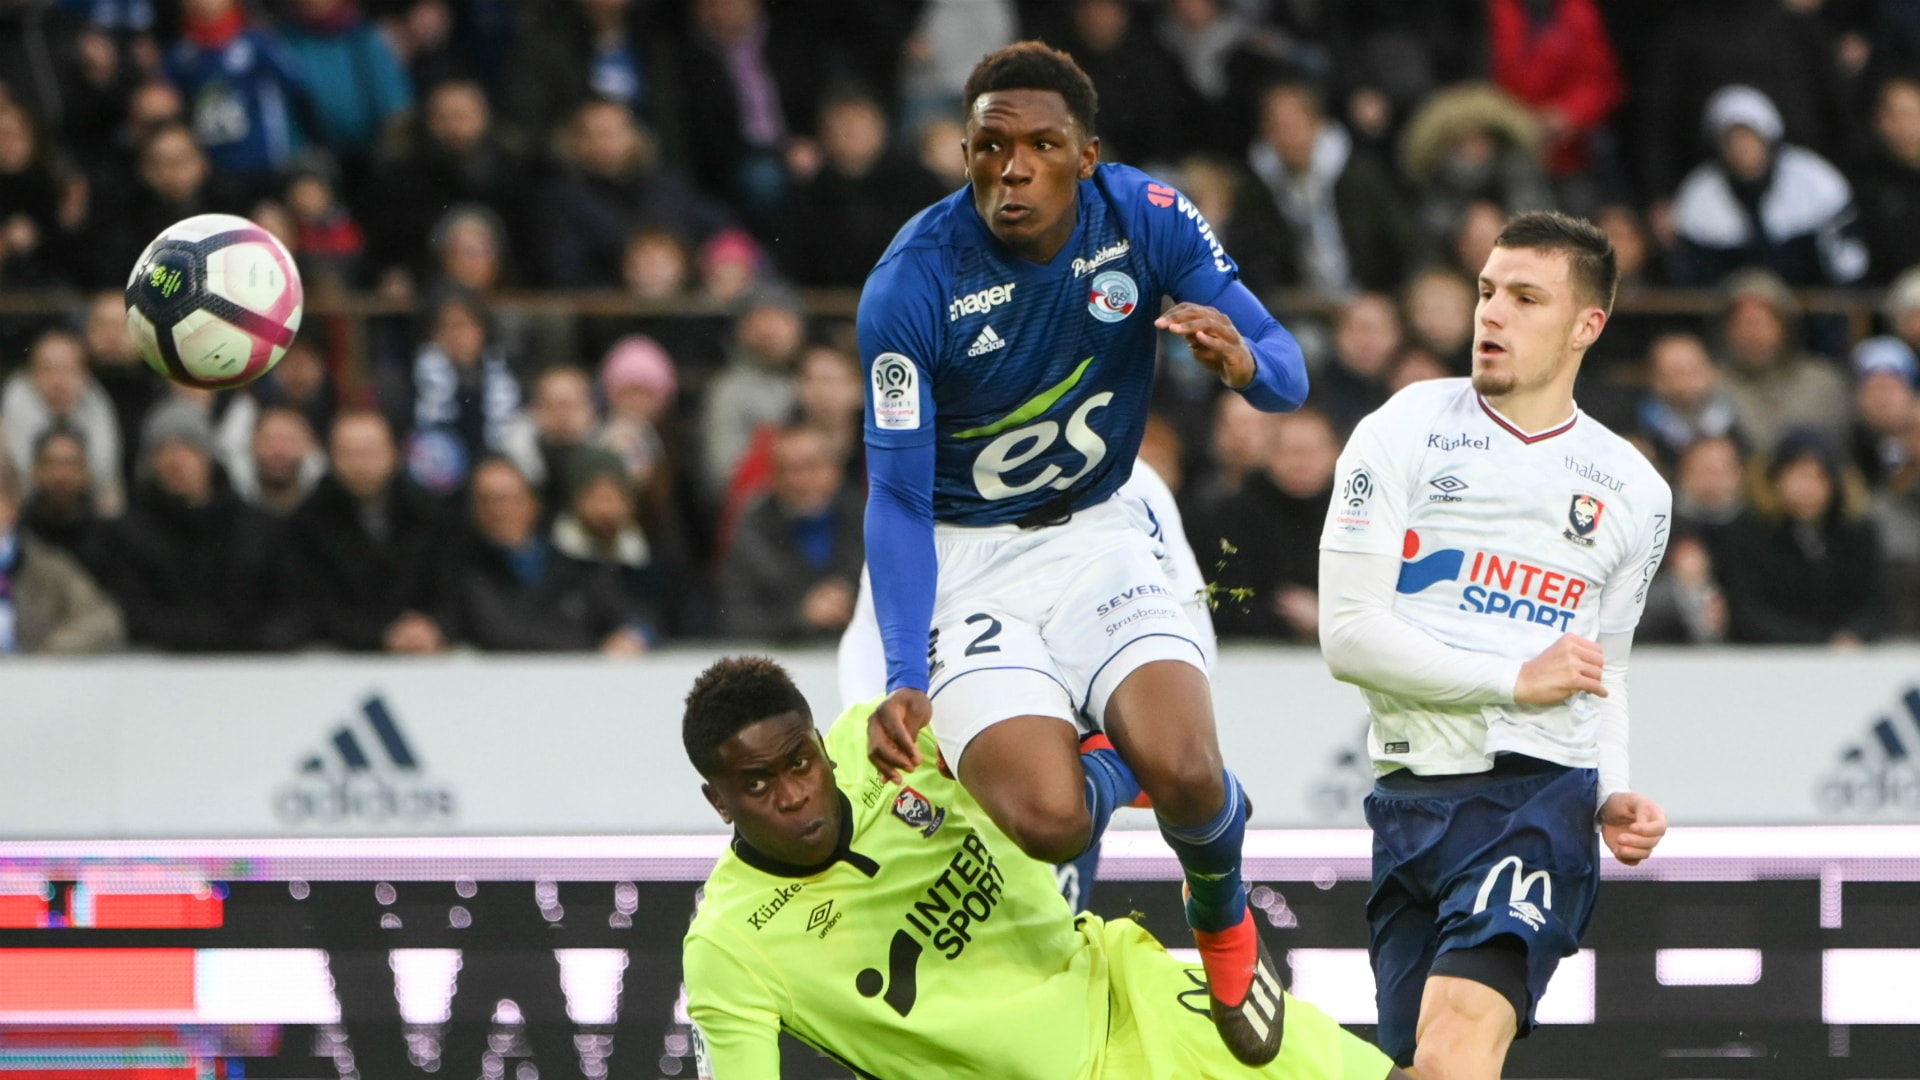 Reims vs Strasbourg Football Prediction